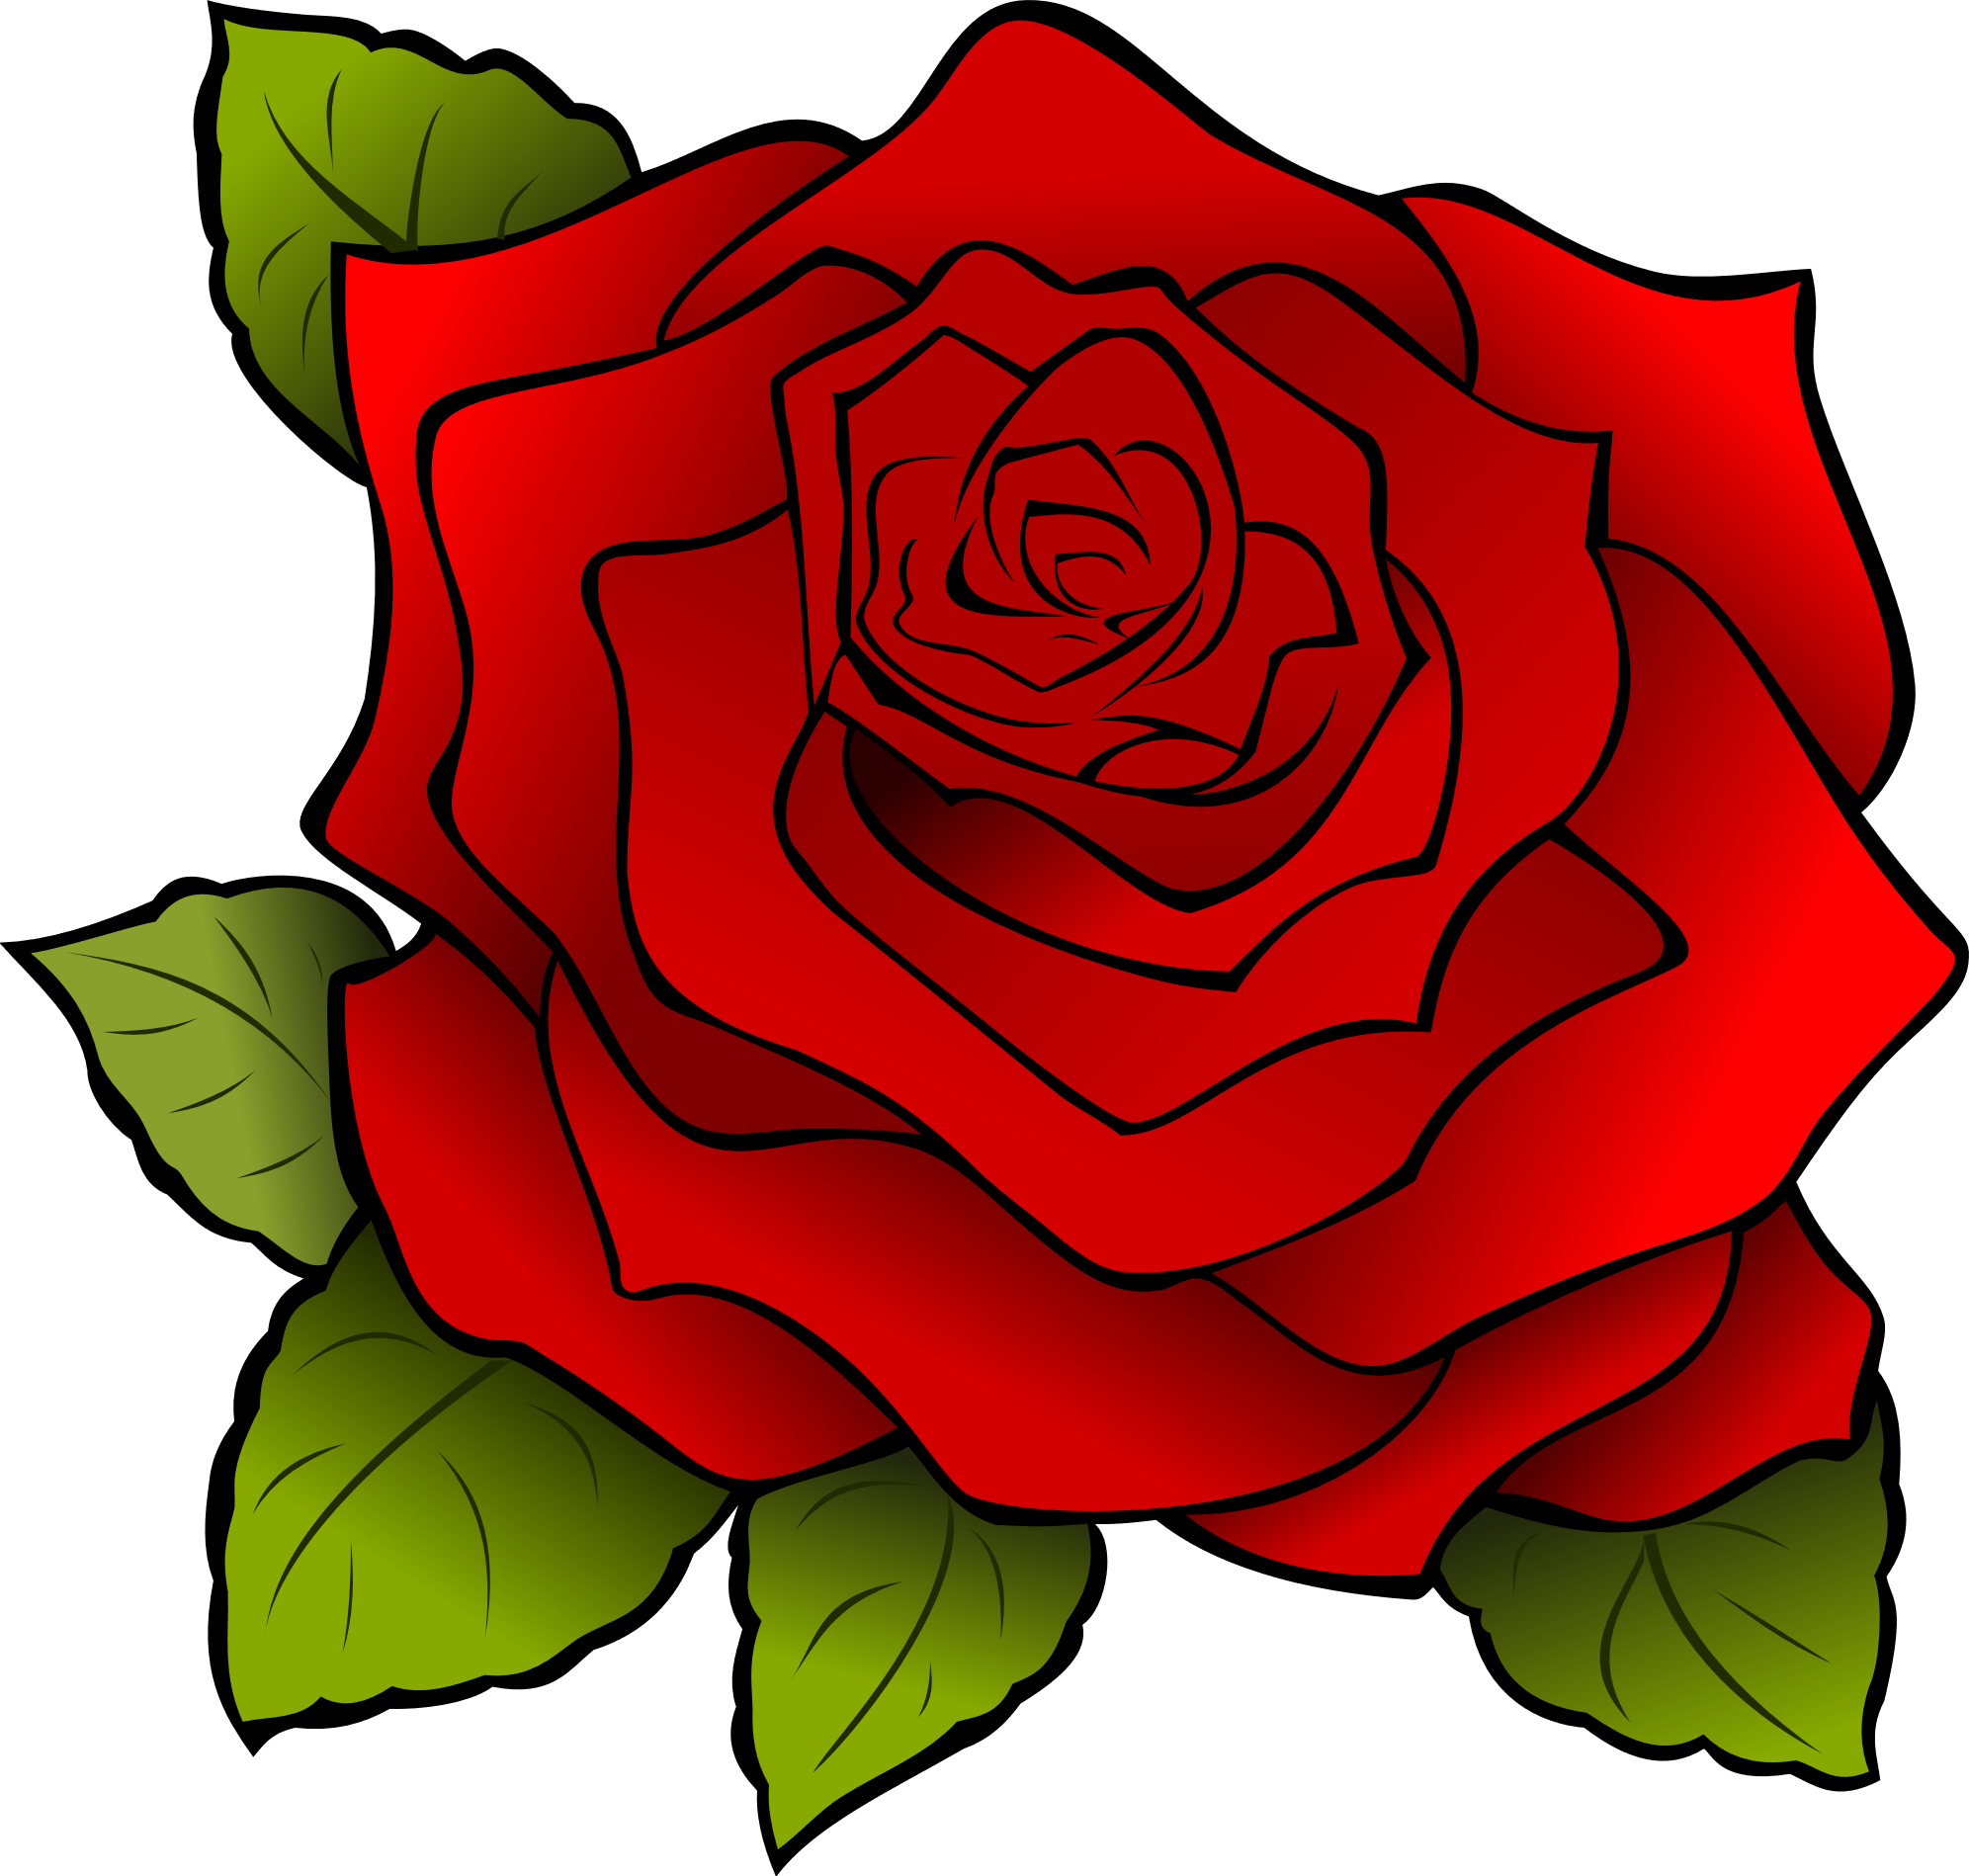 Animated rose png 4 » PNG Image.